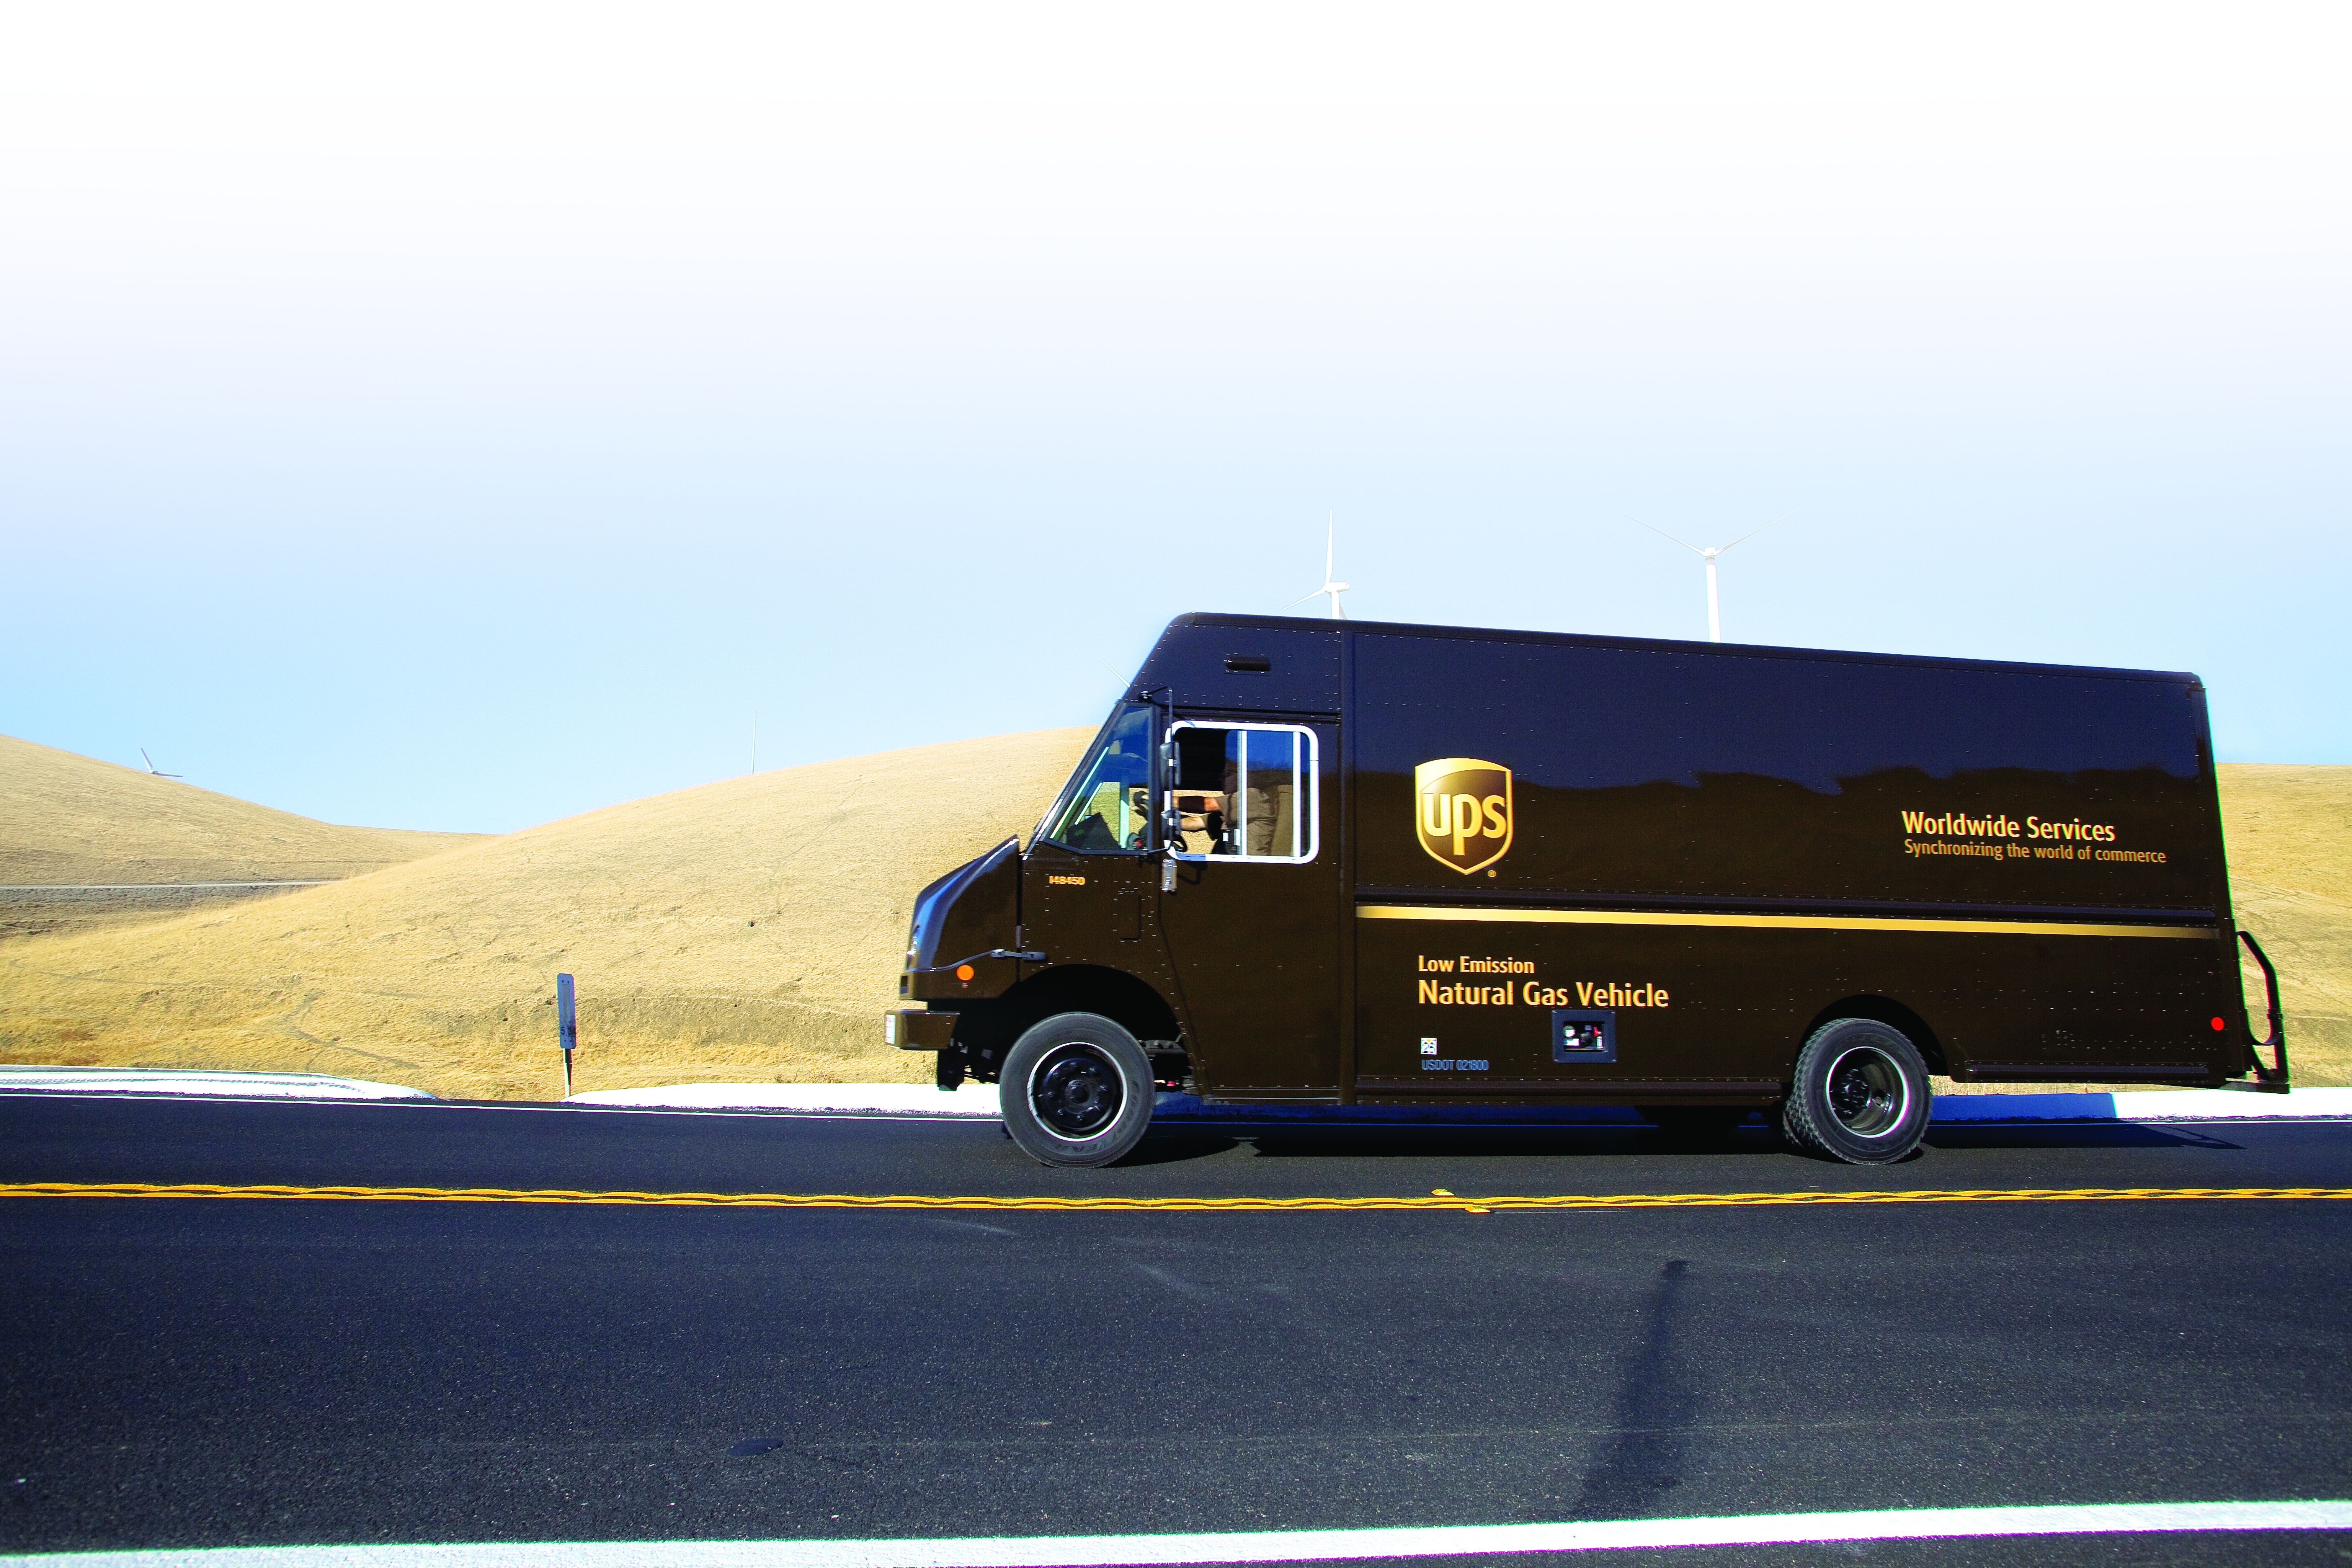 UPS 'Fills Up' on Fuel-Saving Practices